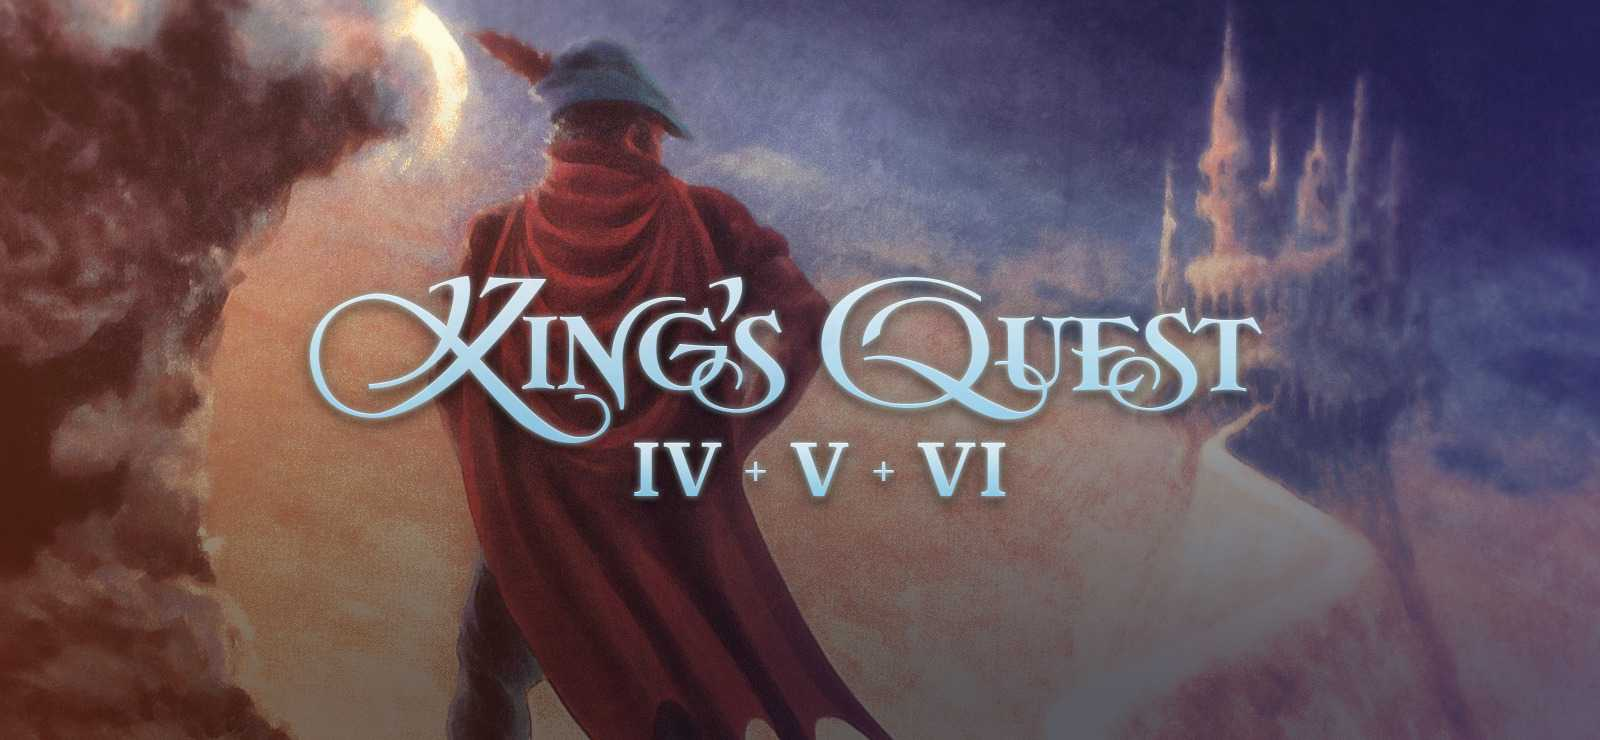 King's Quest 4+5+6